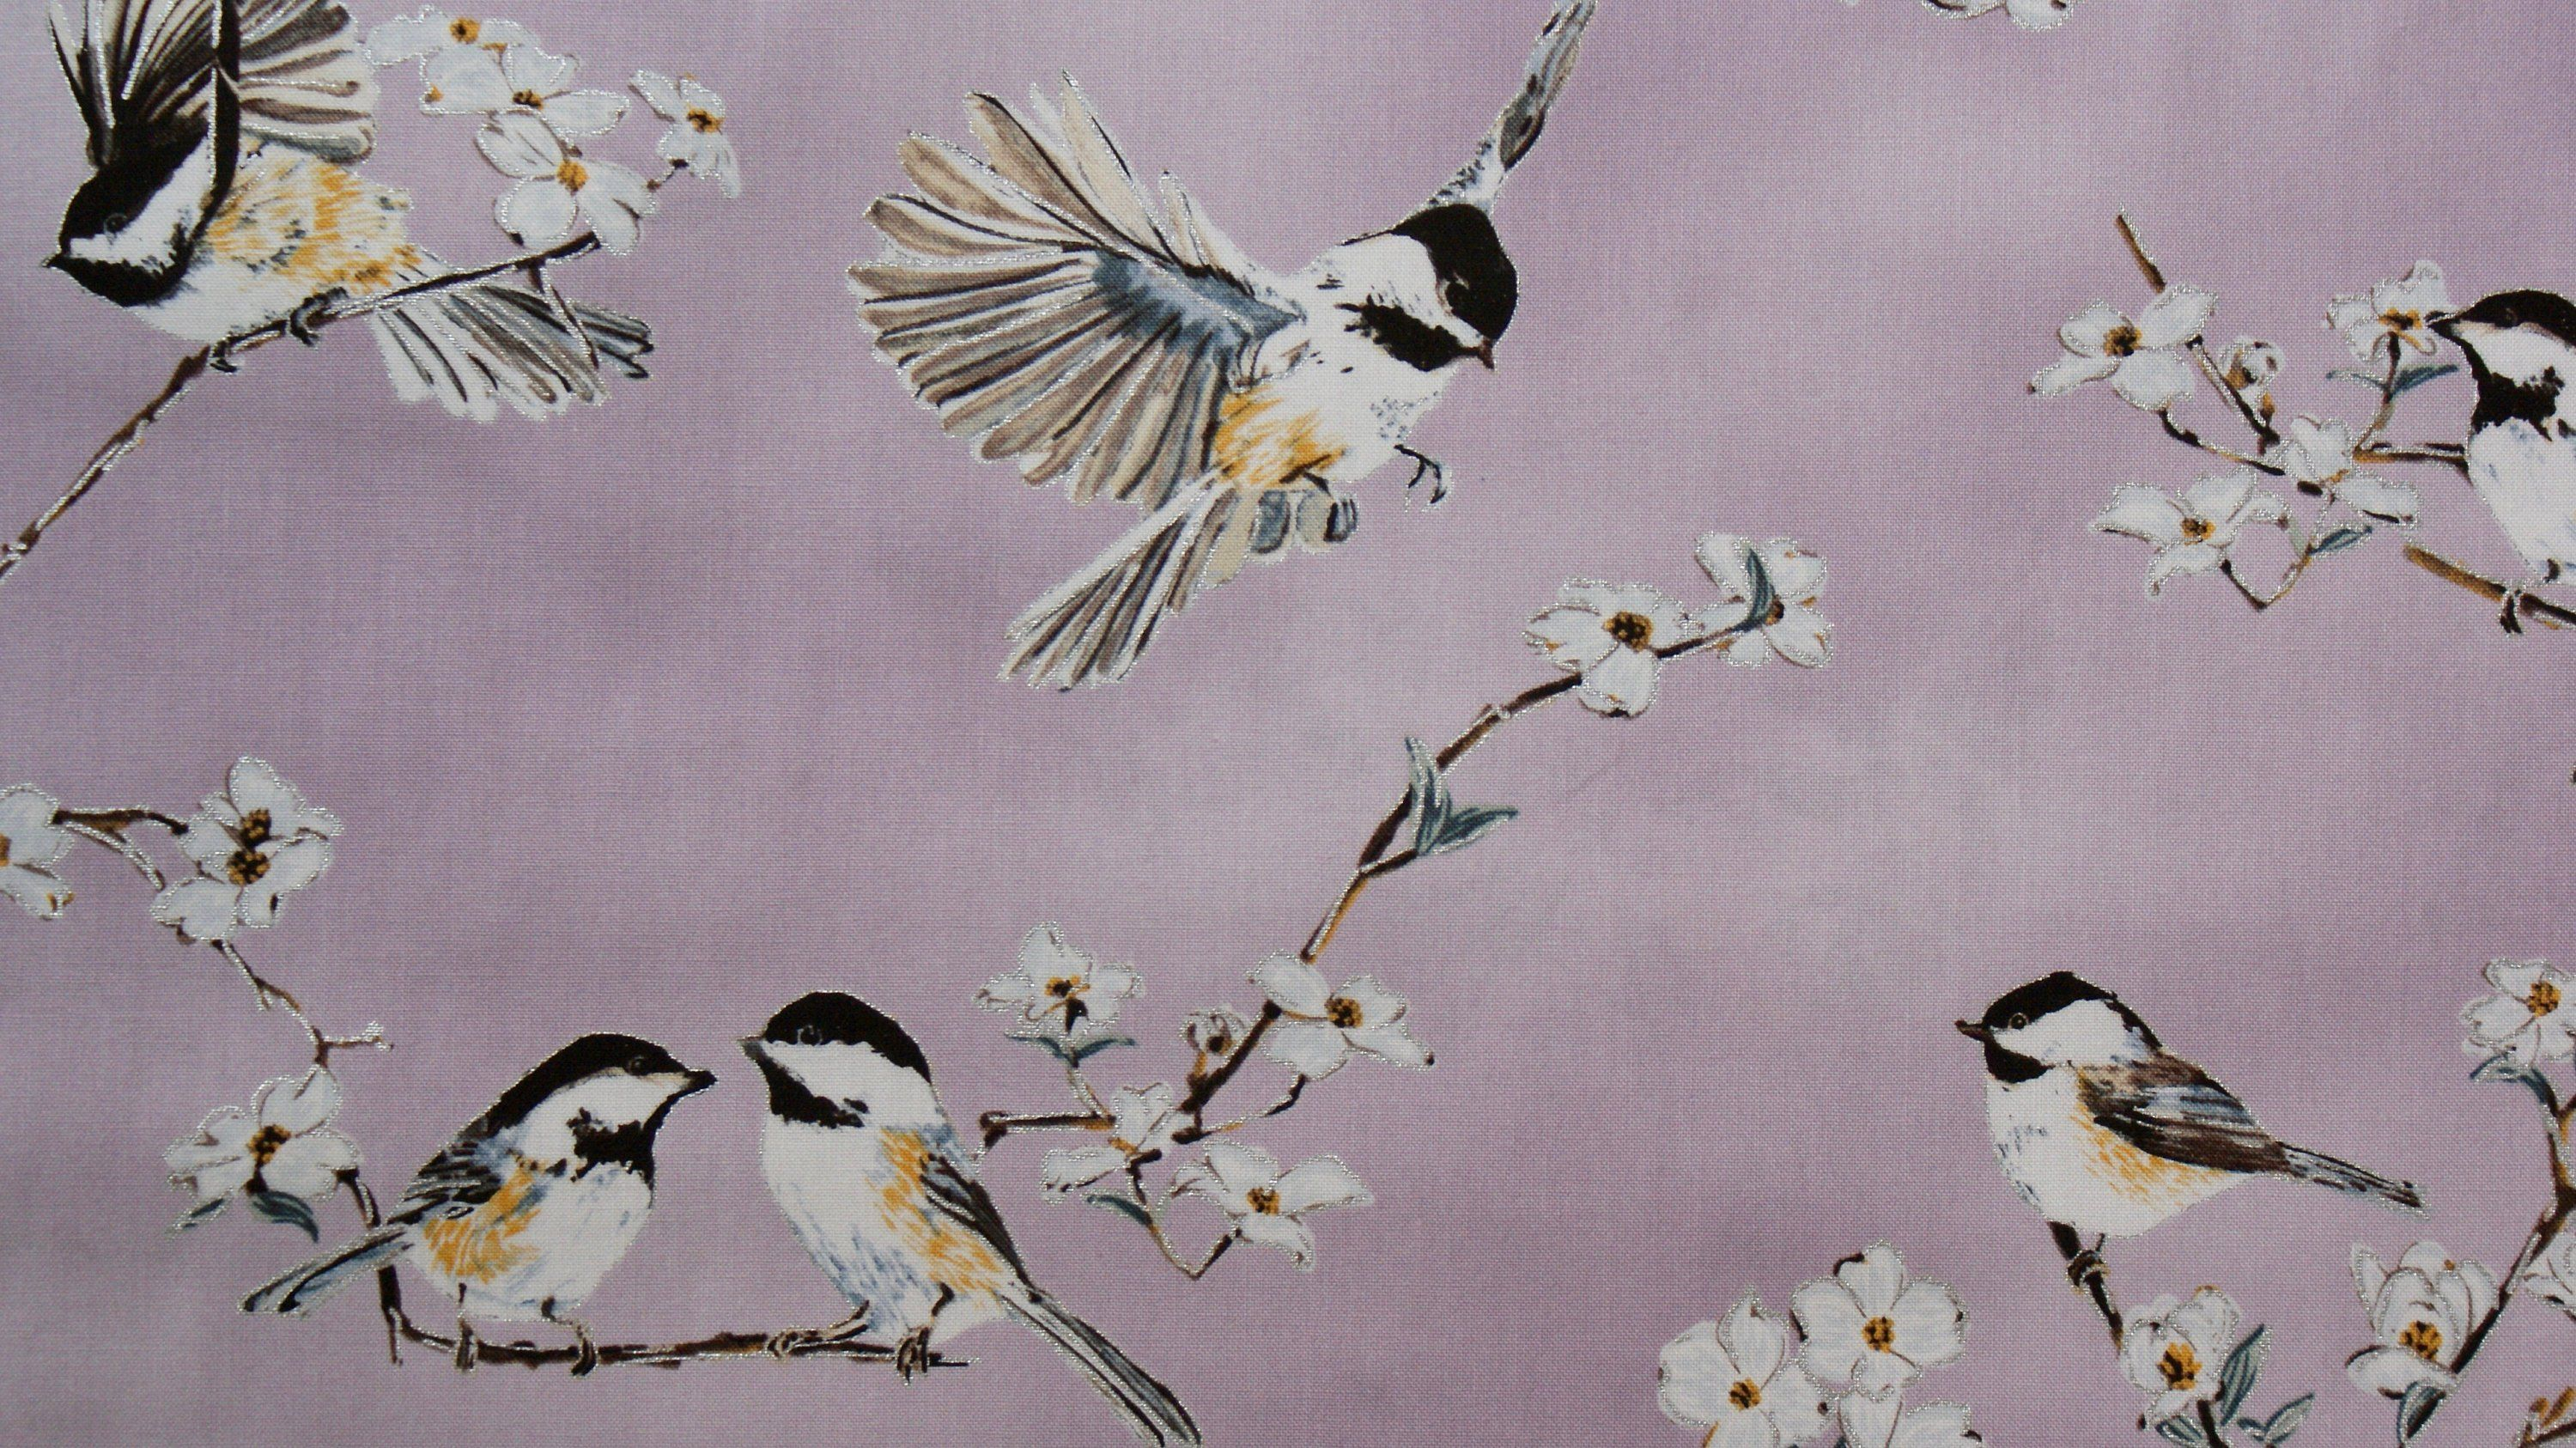 A Small Bird Spring Cotton Fabric Altrosa Schone Stoffe Altrosa Kleine Vogel